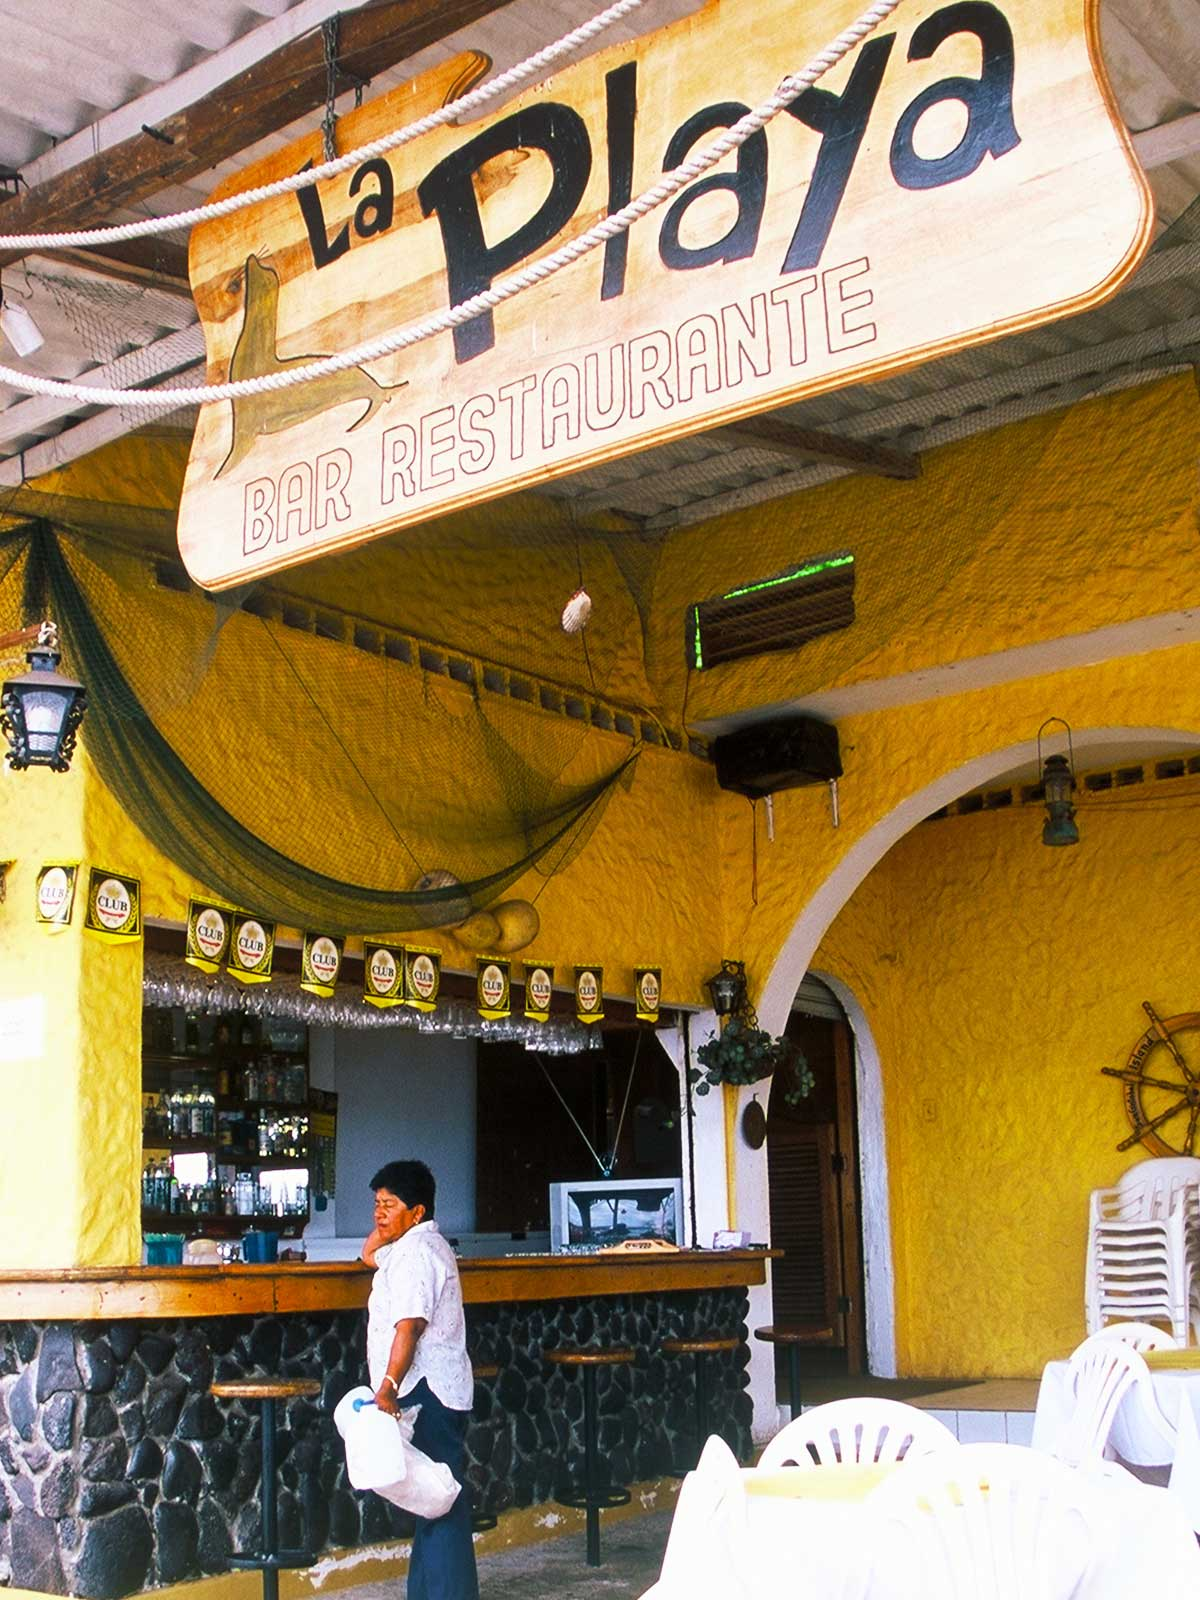 Galapagos Cafe Bar Restaurant | Steven Andrew Martin | Photo Journal | Education Research Ecuador